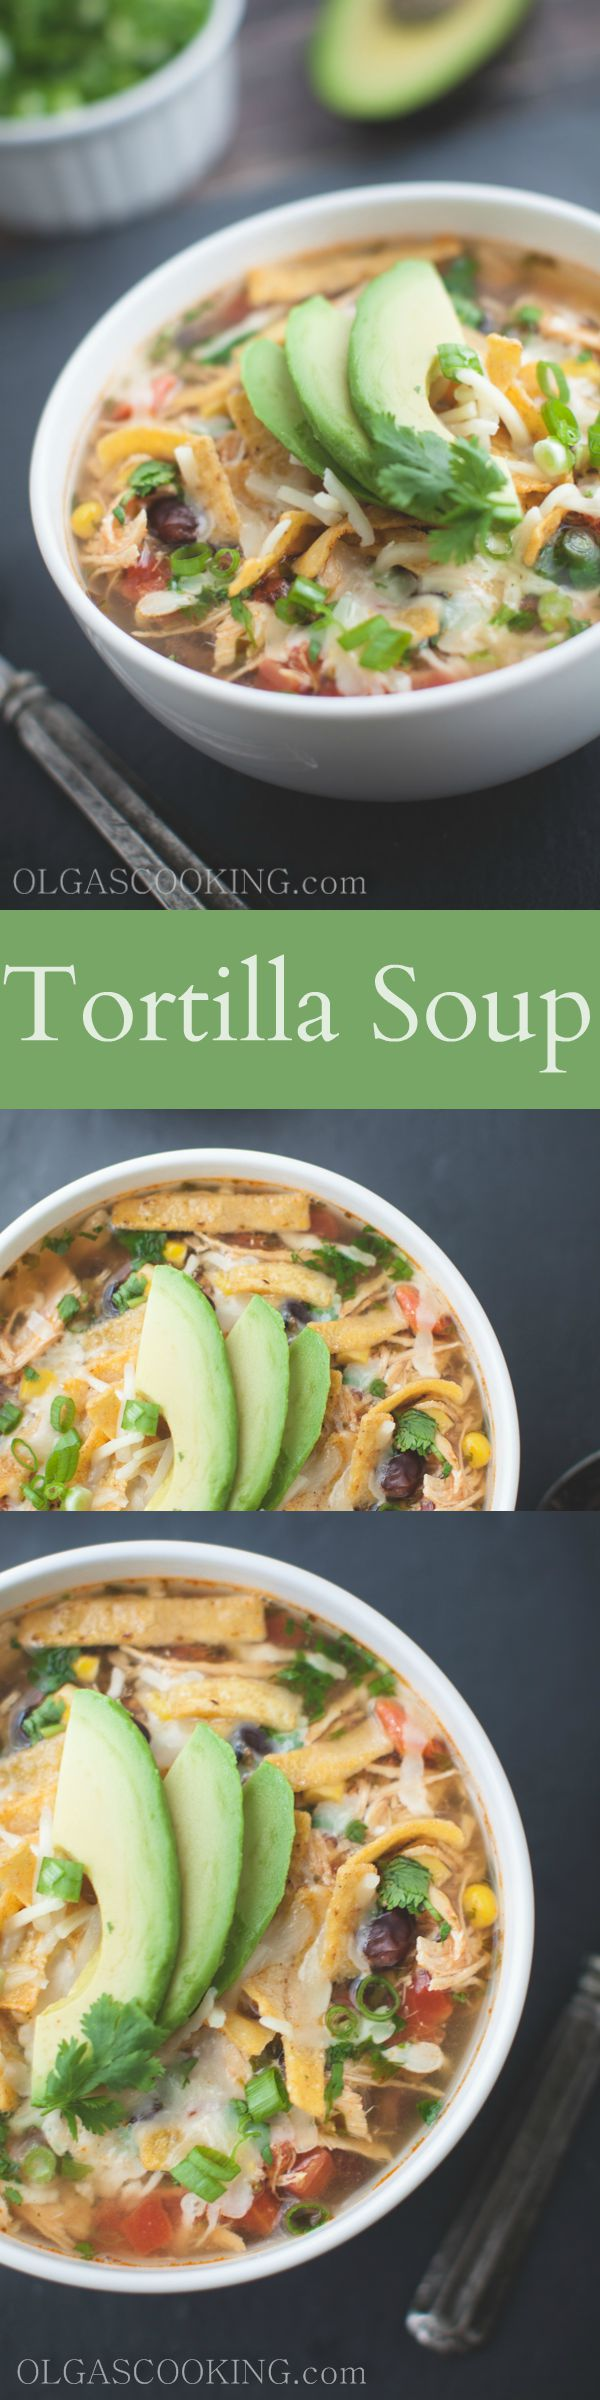 Tortilla Soup...so much flavor you'll be craving for more! Deliciousness!